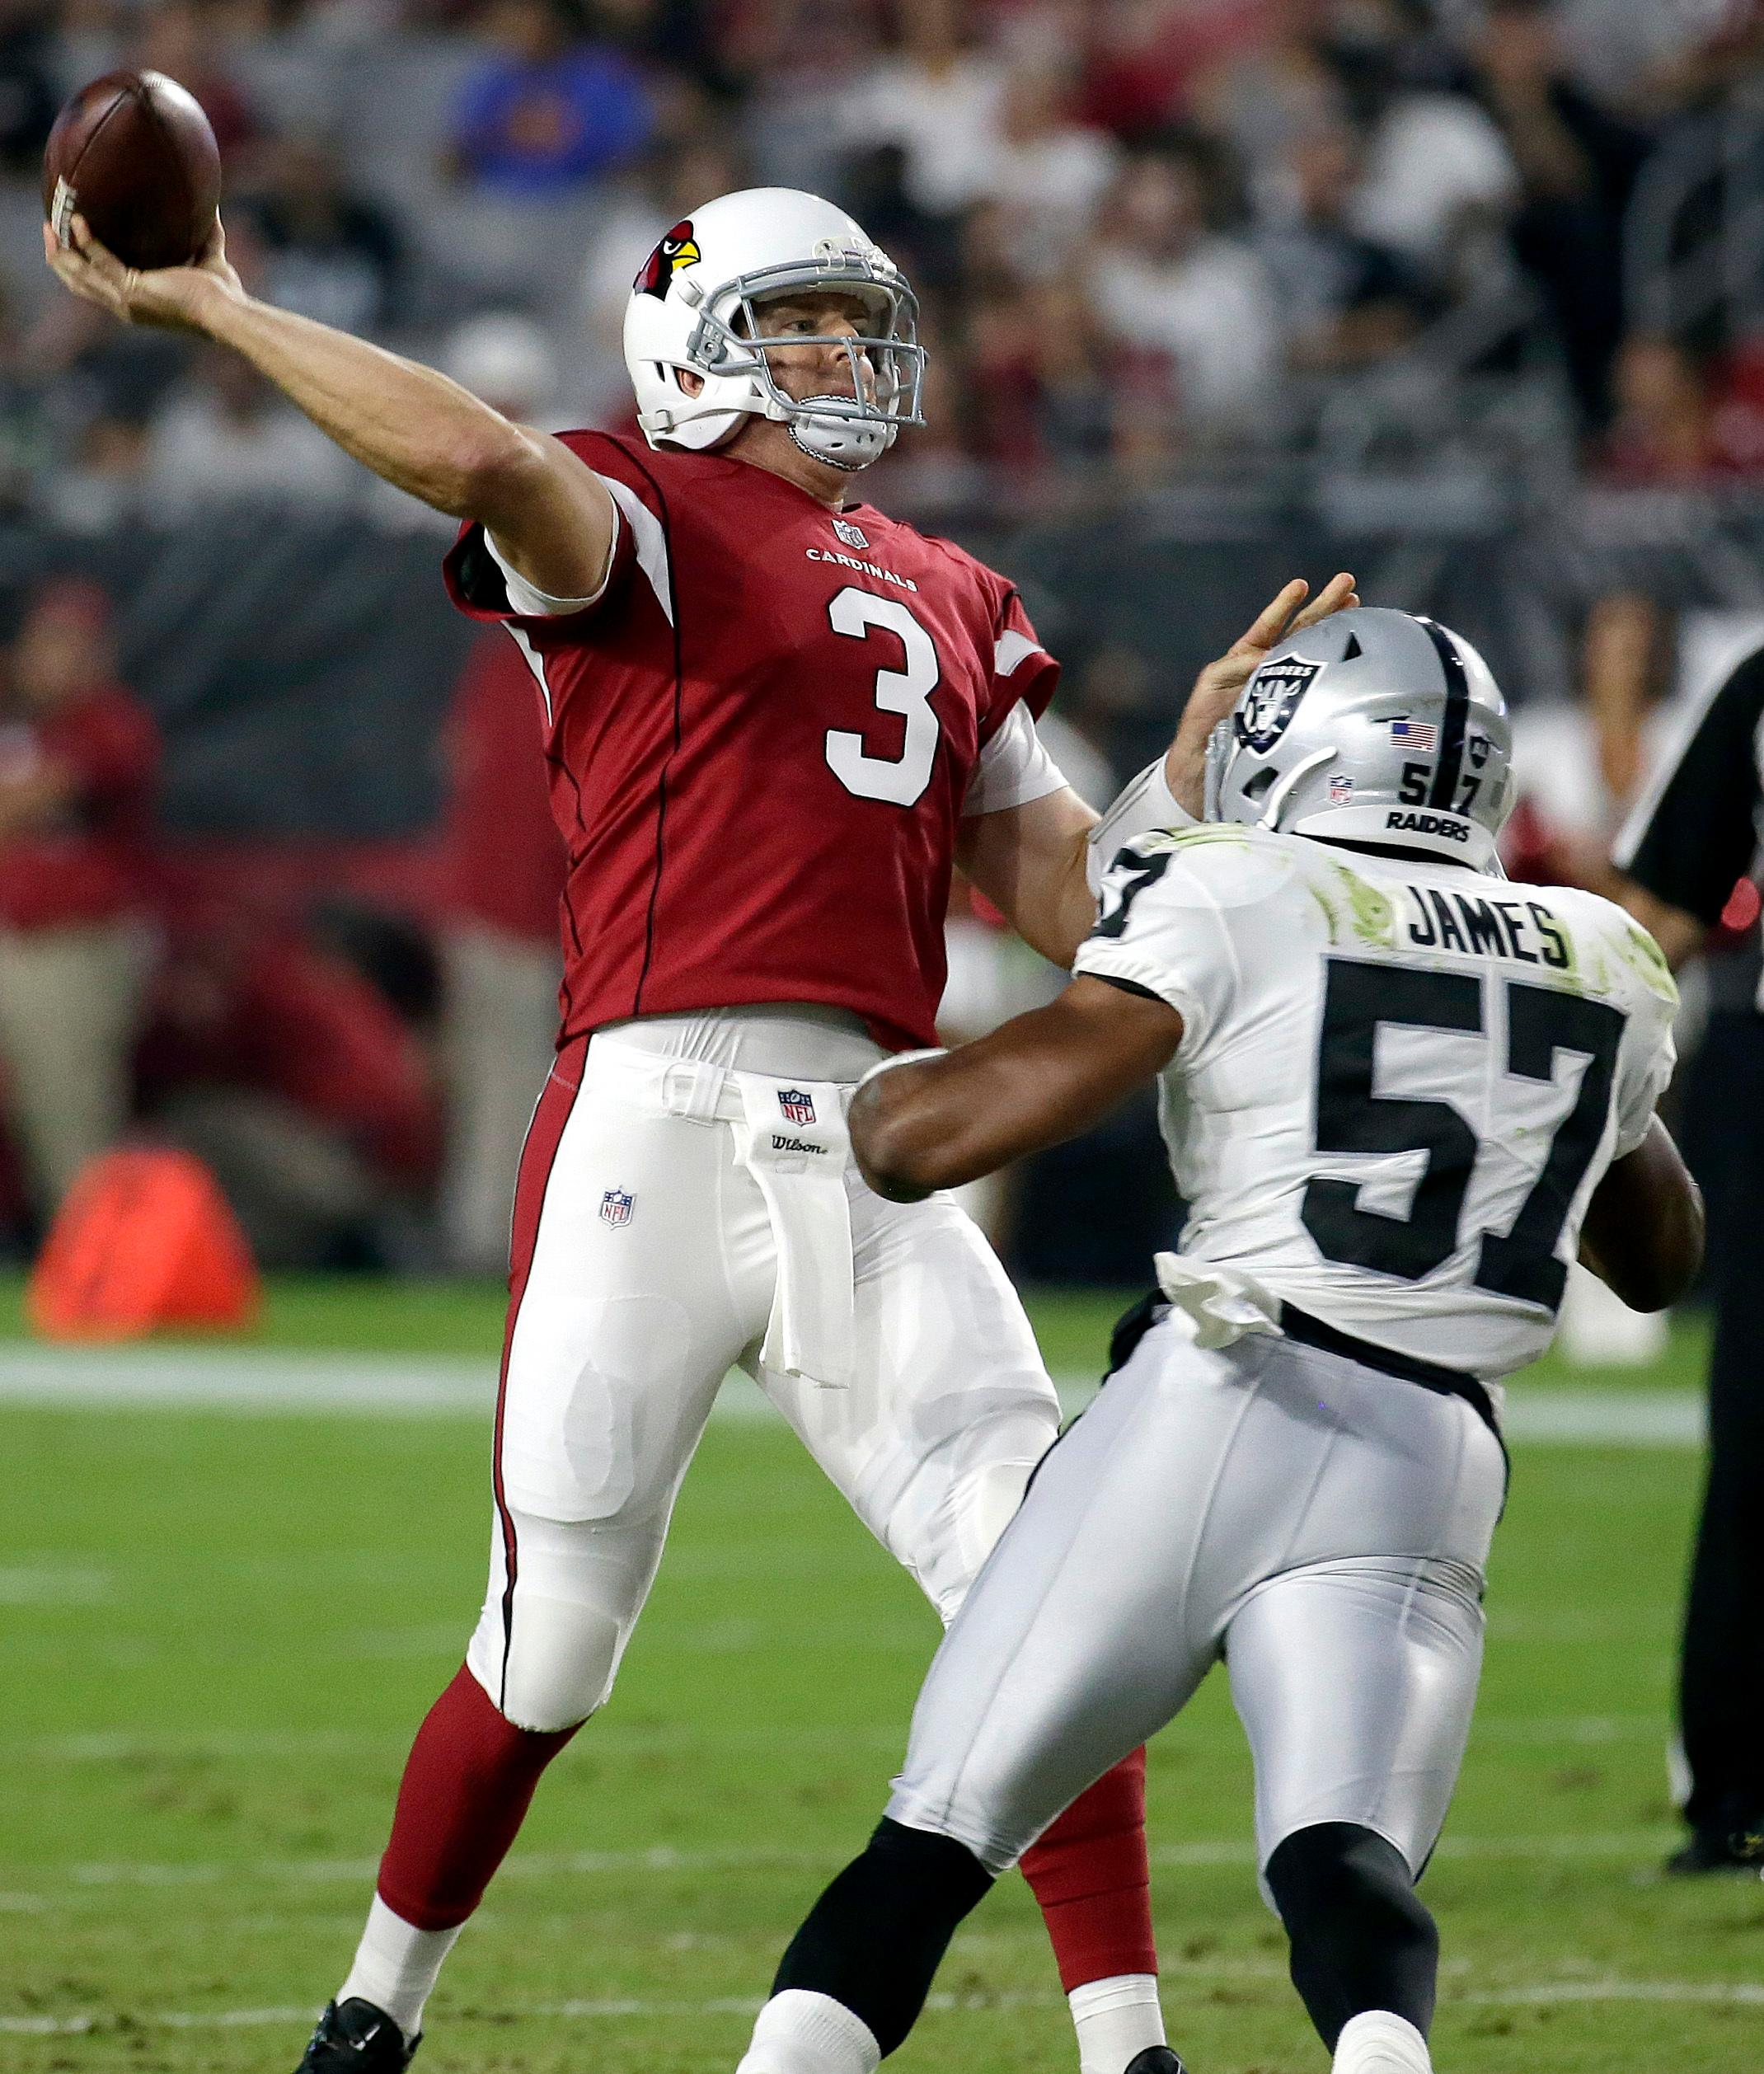 Arizona Cardinals quarterback Carson Palmer (3) throws under pressure from Oakland Raiders middle linebacker Cory James (57) during the first half of an NFL preseason football game, Saturday, Aug. 12, 2017, in Glendale, Ariz. (AP Photo/Rick Scuteri)